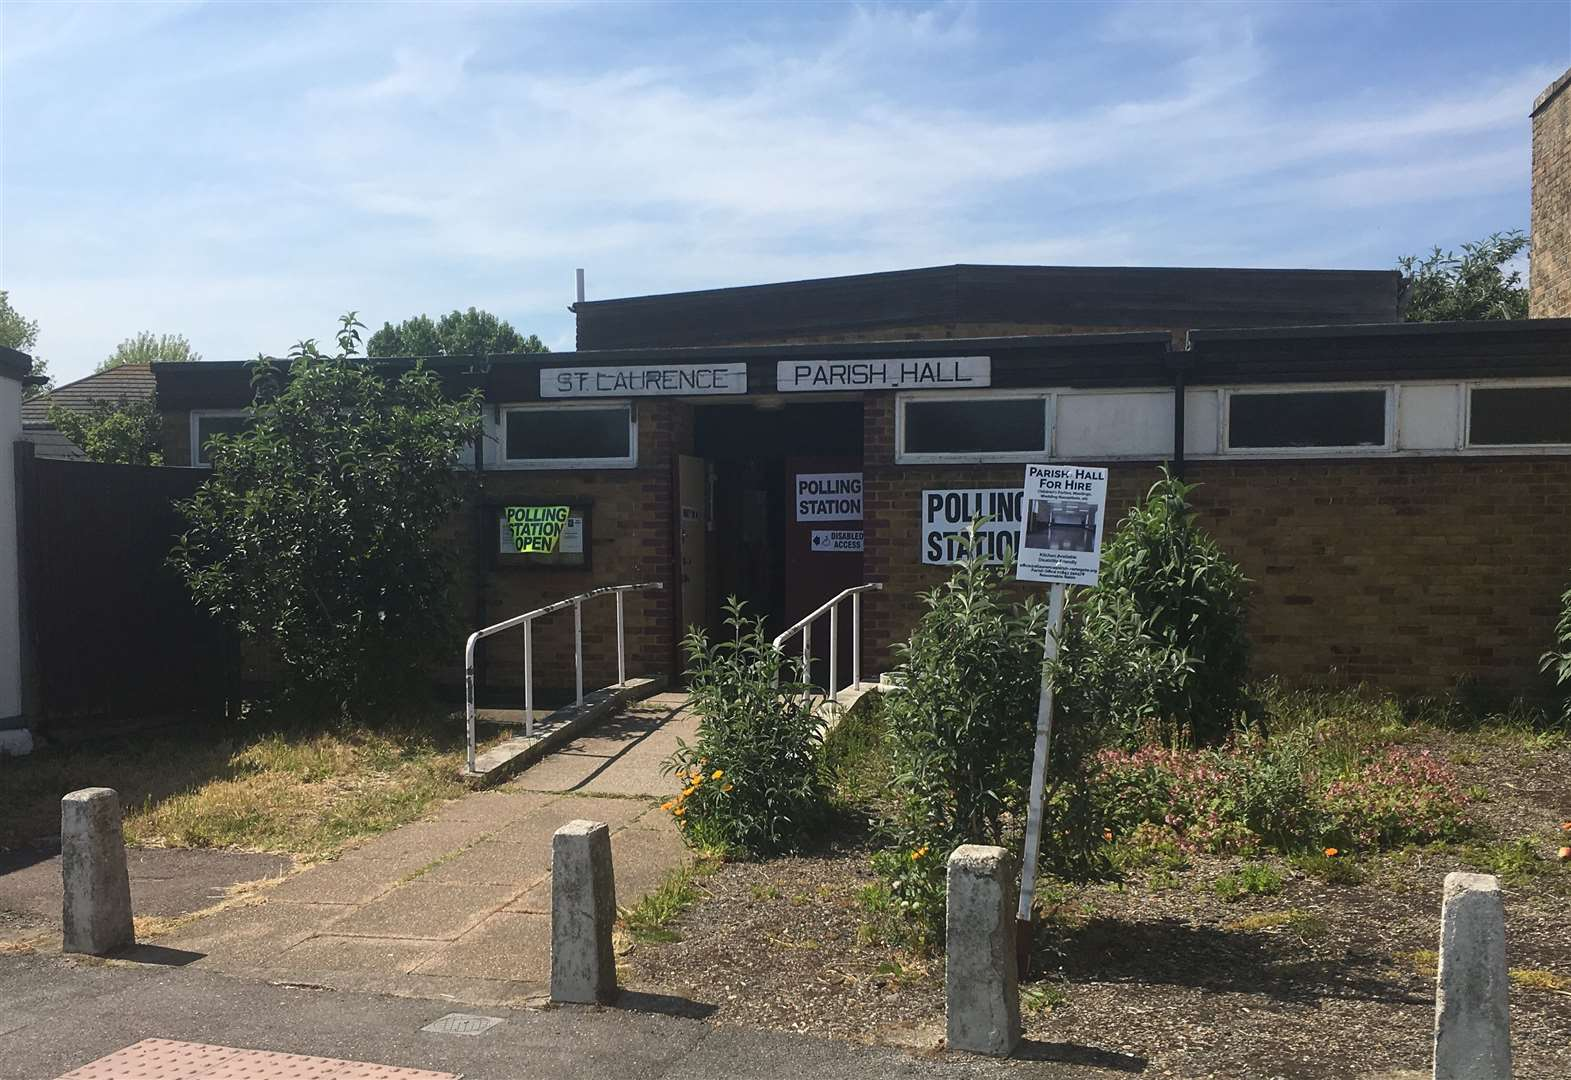 Police called to polling station